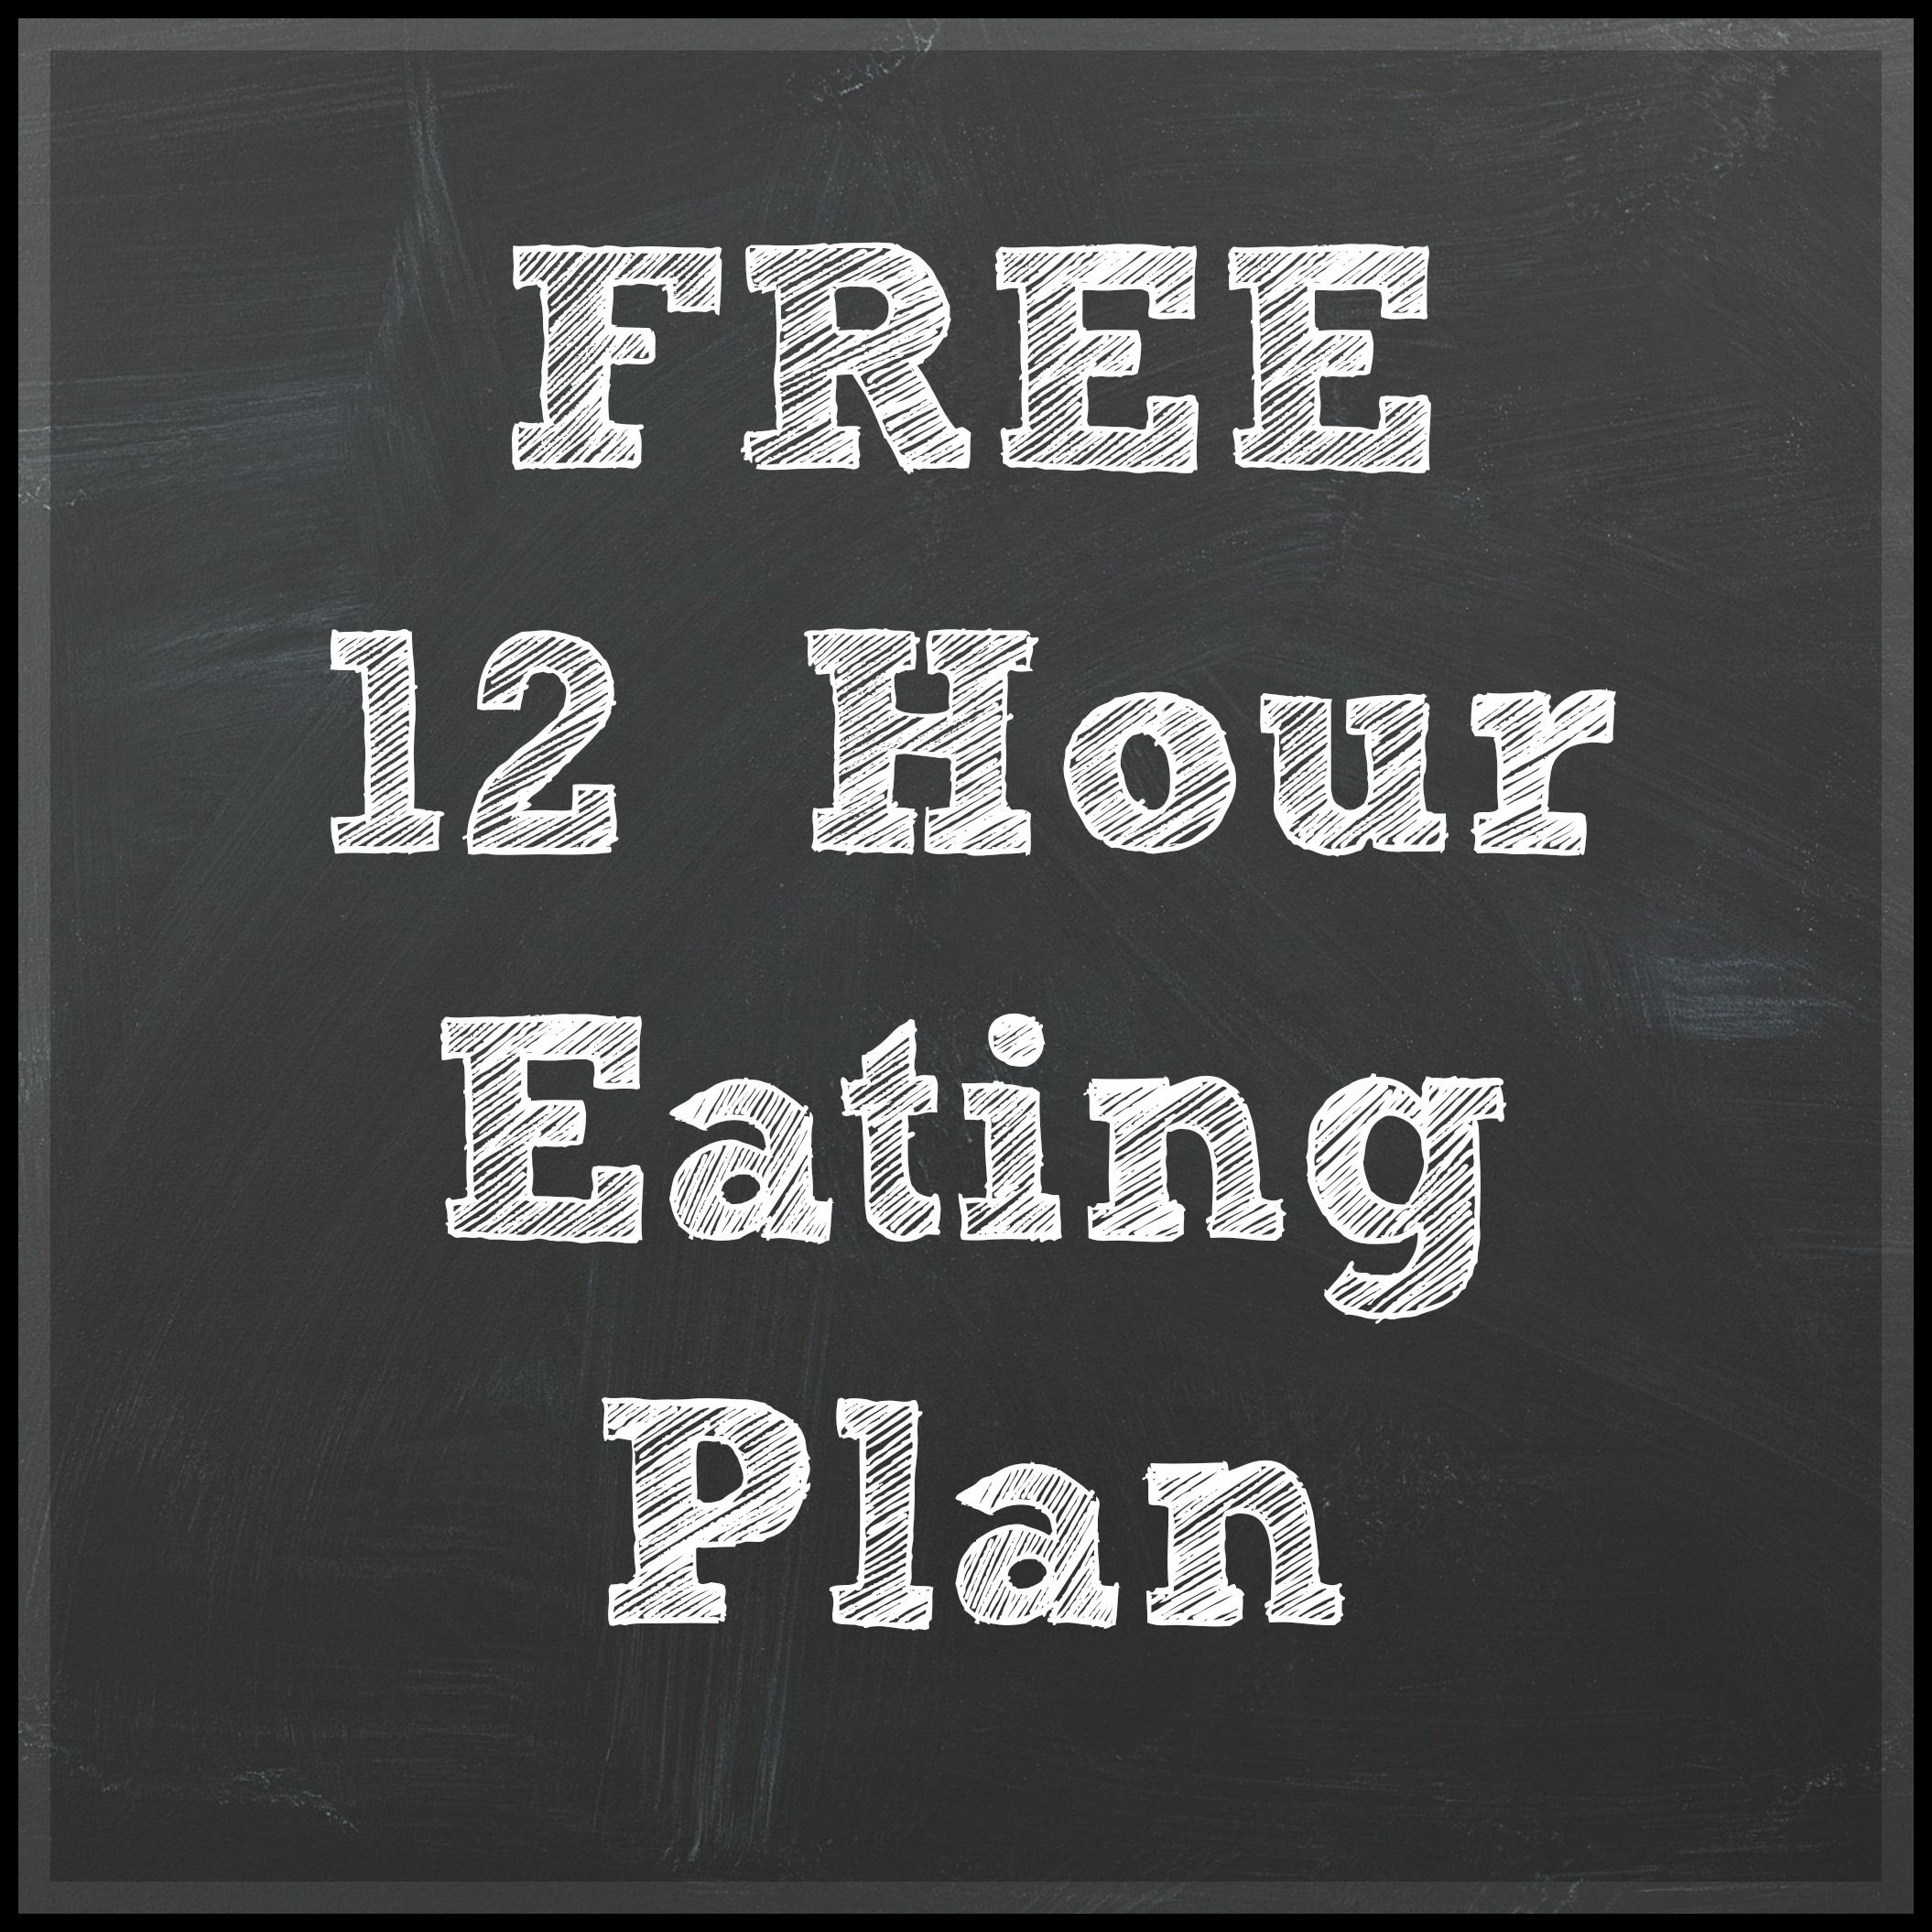 Free 12 Hour Eating Plan 12 Hour Shift Meals Night Shift Eating